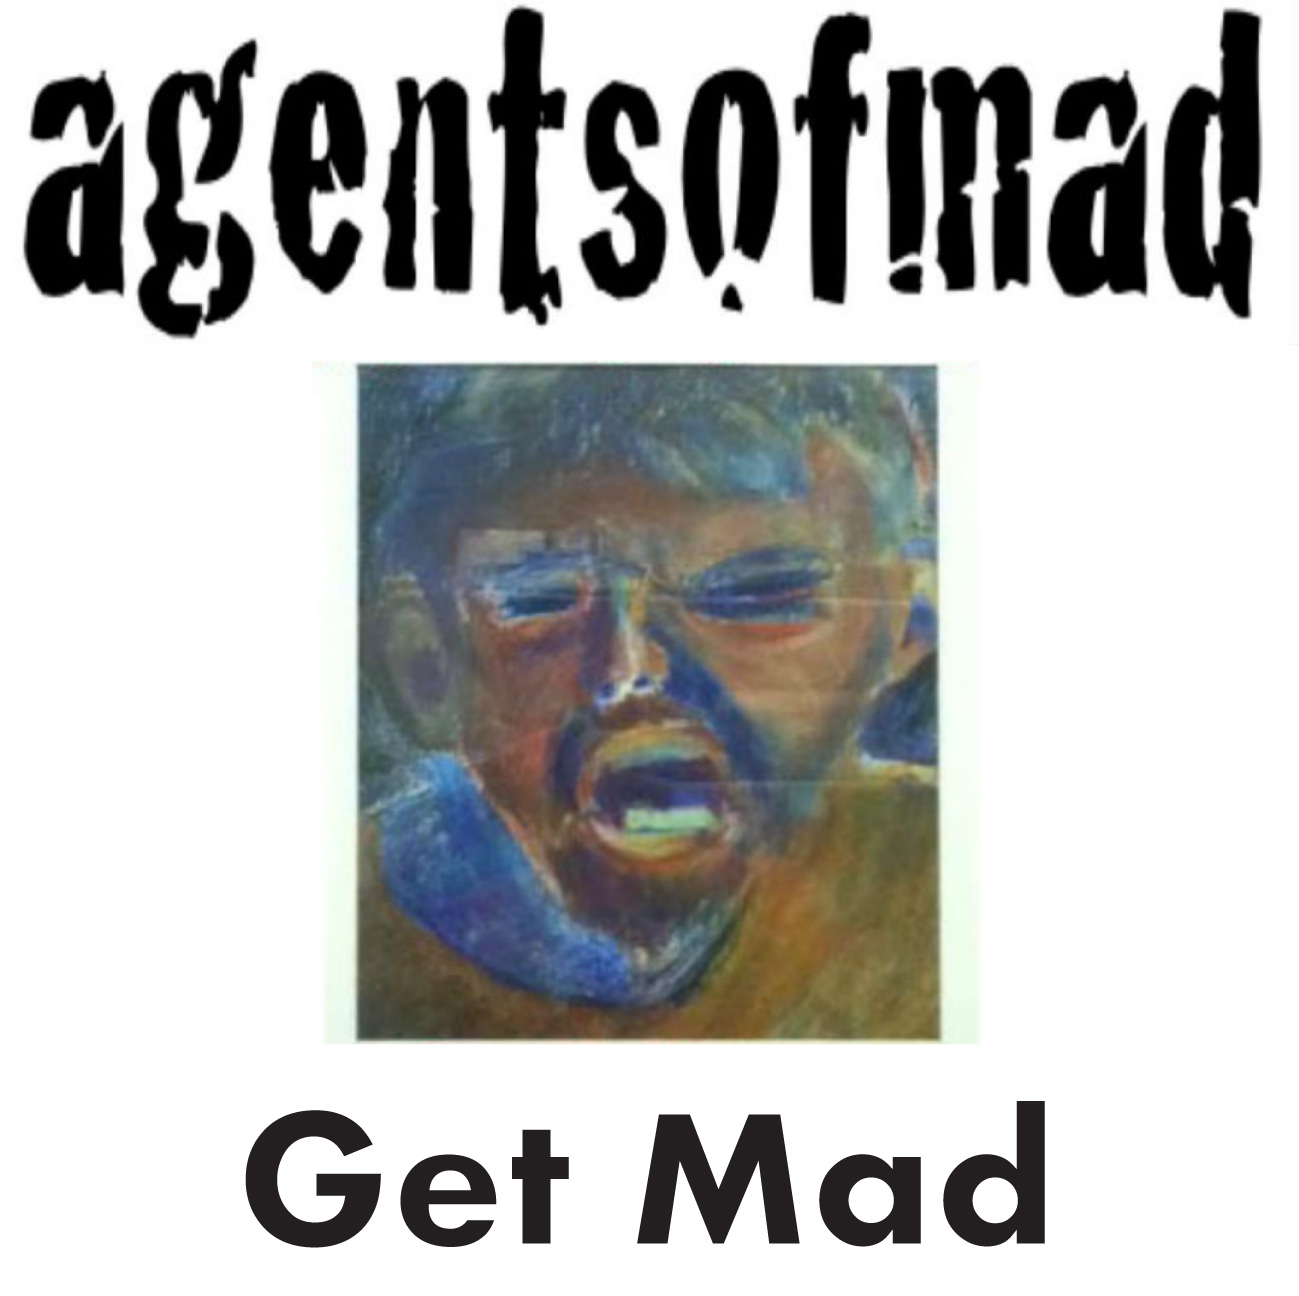 agentsofmad Get Mad EP CD Cover